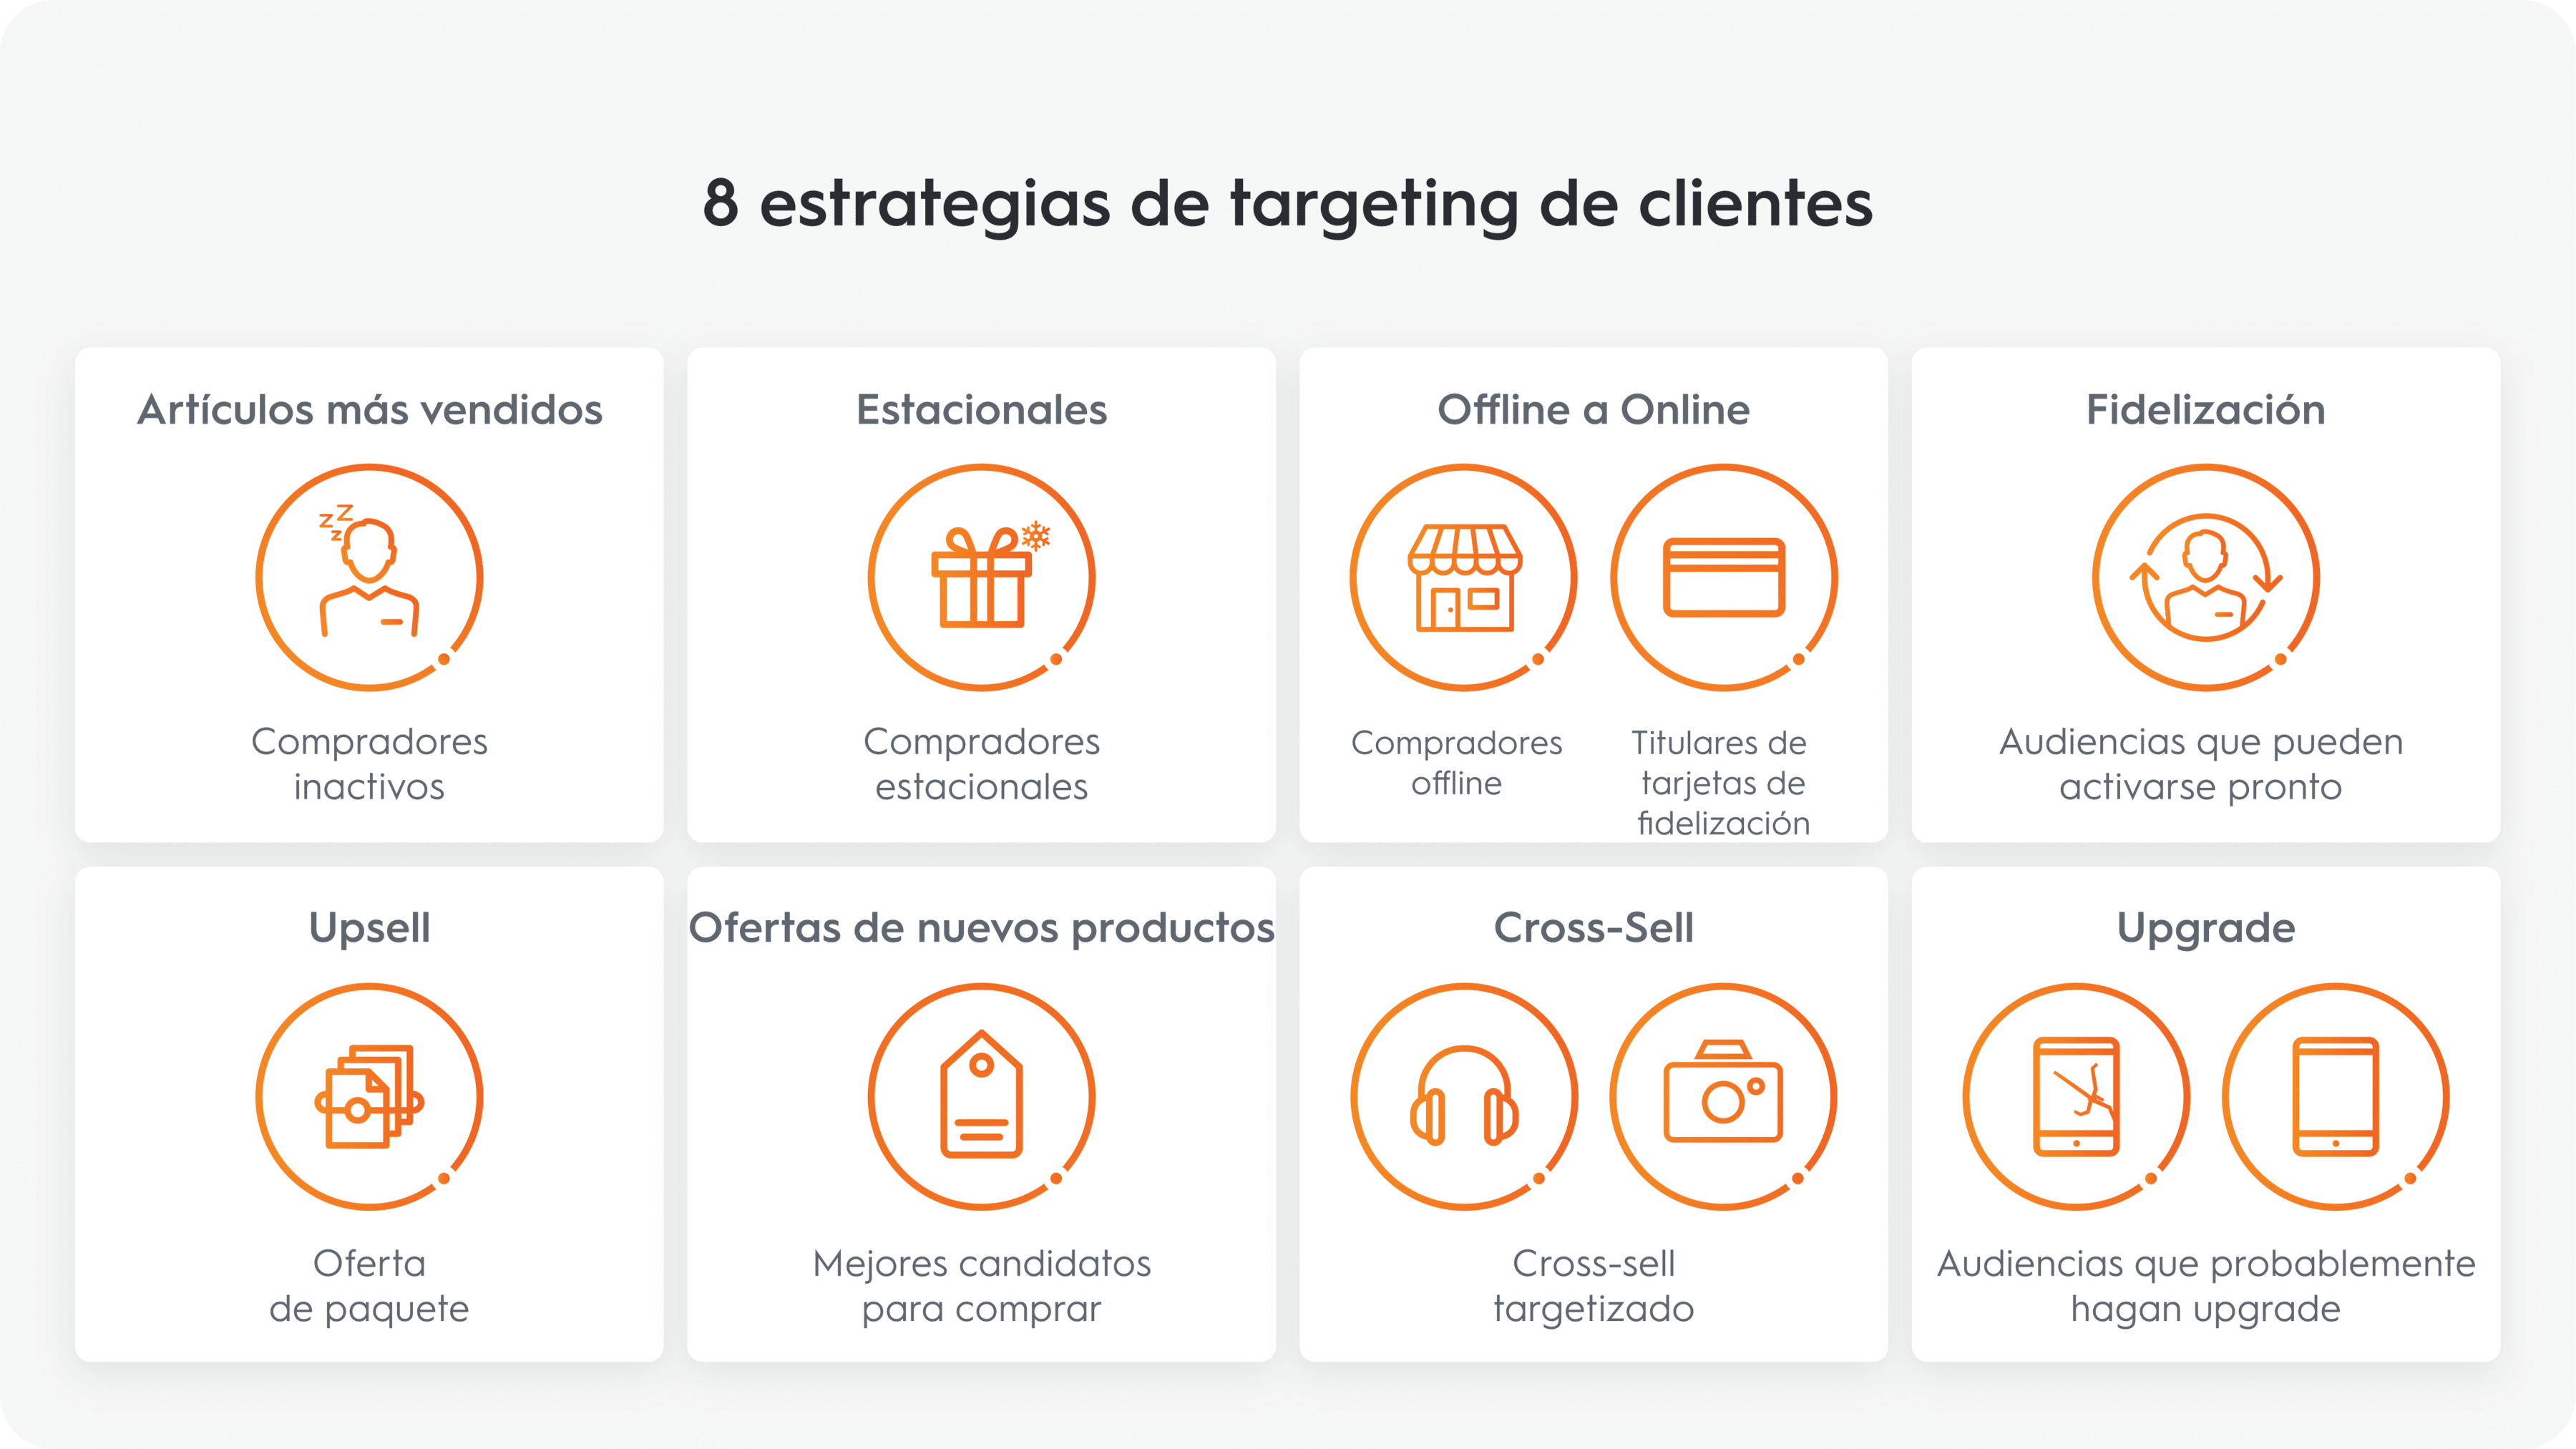 8 strategies de targeting de clientes